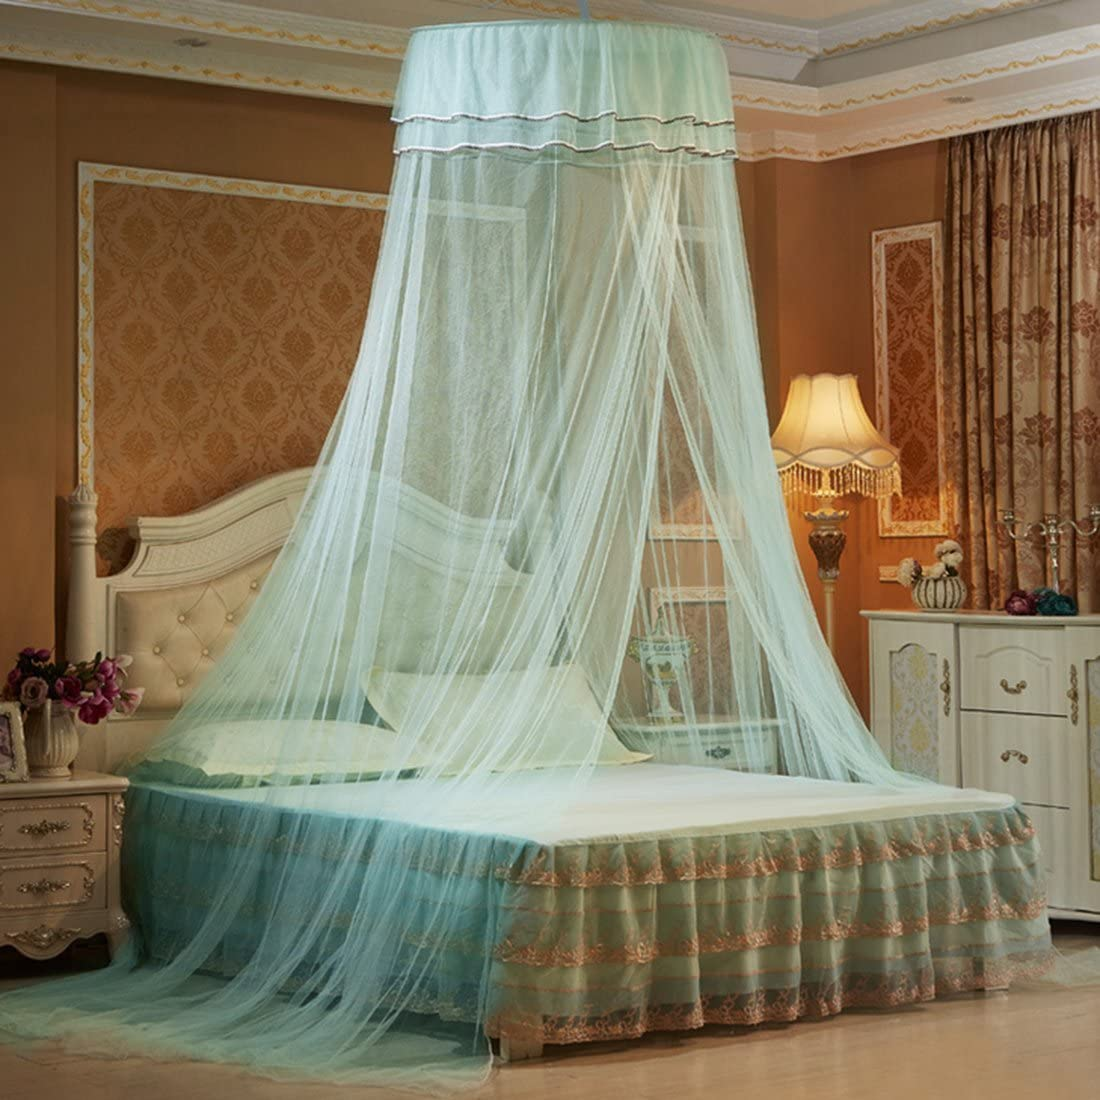 Ultra Large: for Double to Super King Size Quick Easy Installation OSoMax Mosquito Net Bed Canopy Finest Holes: Mesh 300 Curtain Netting